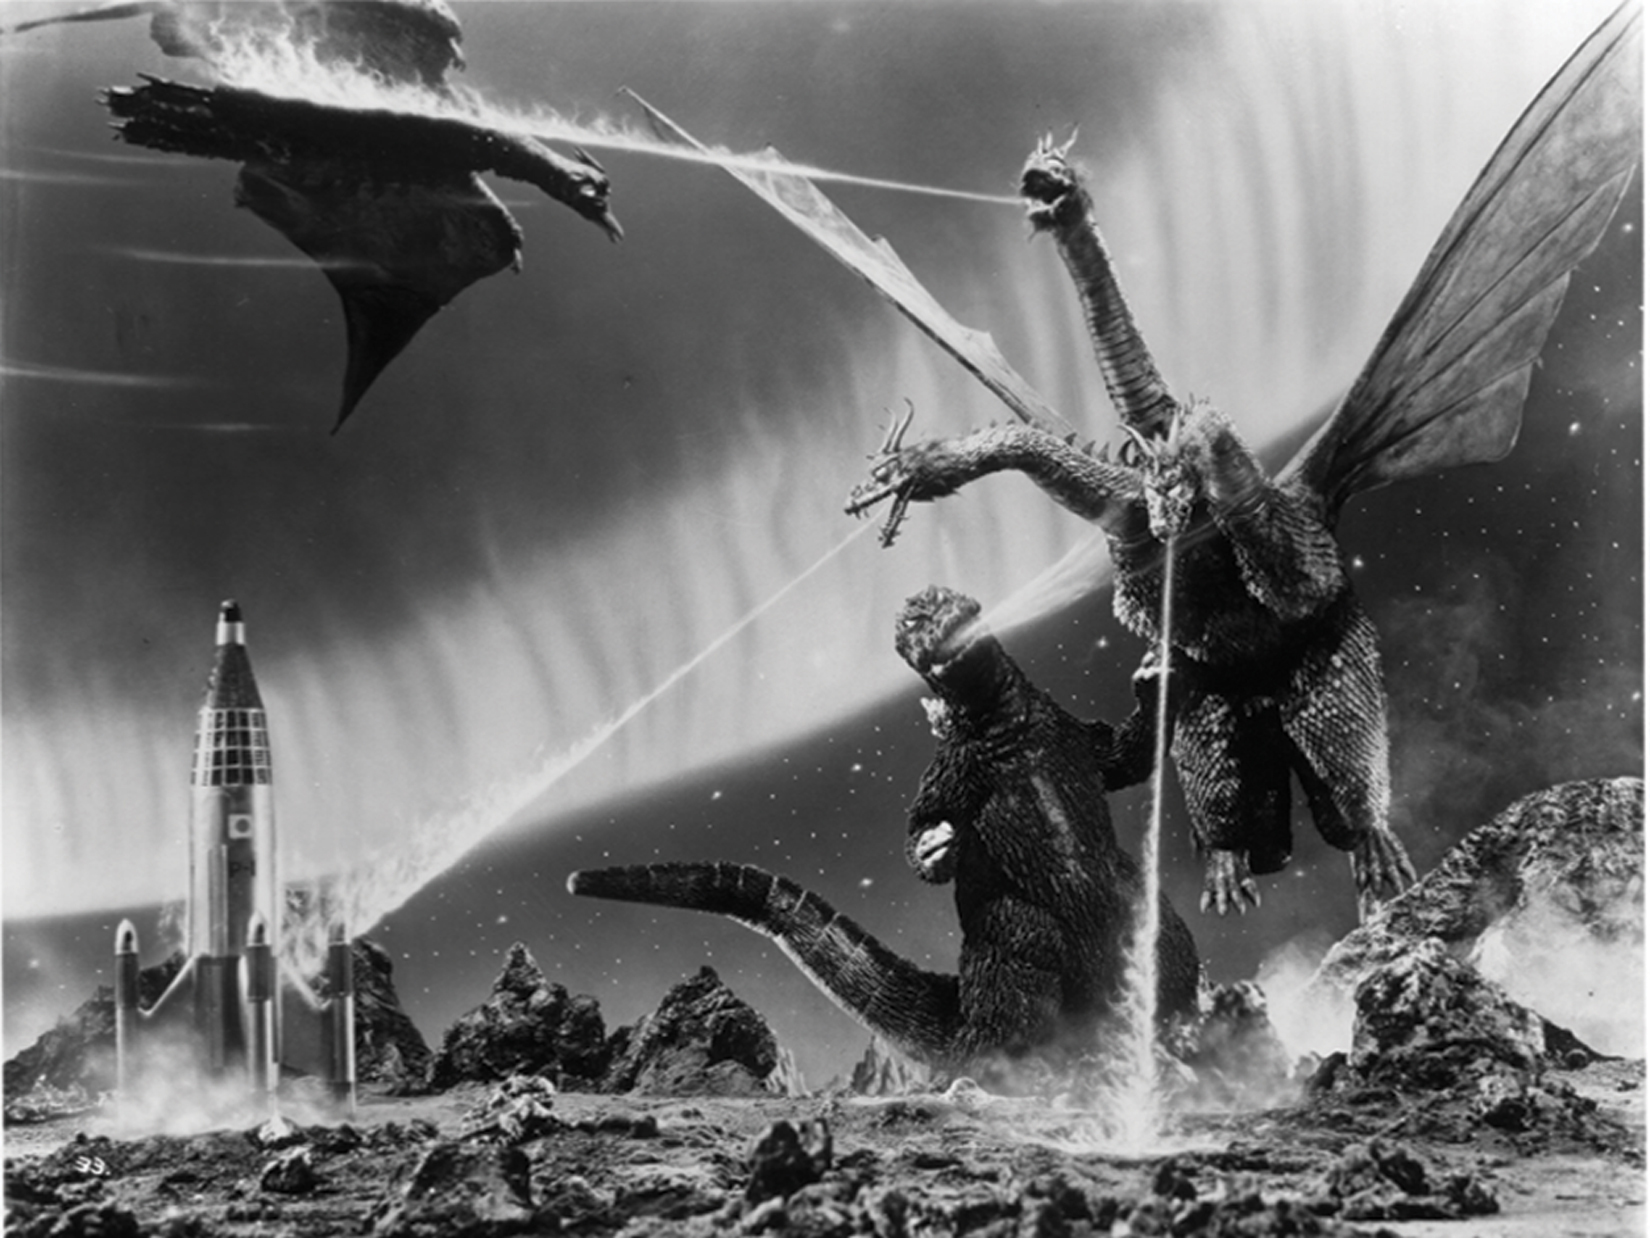 Godzilla and Rodan battle King Ghidorah on PLANET X